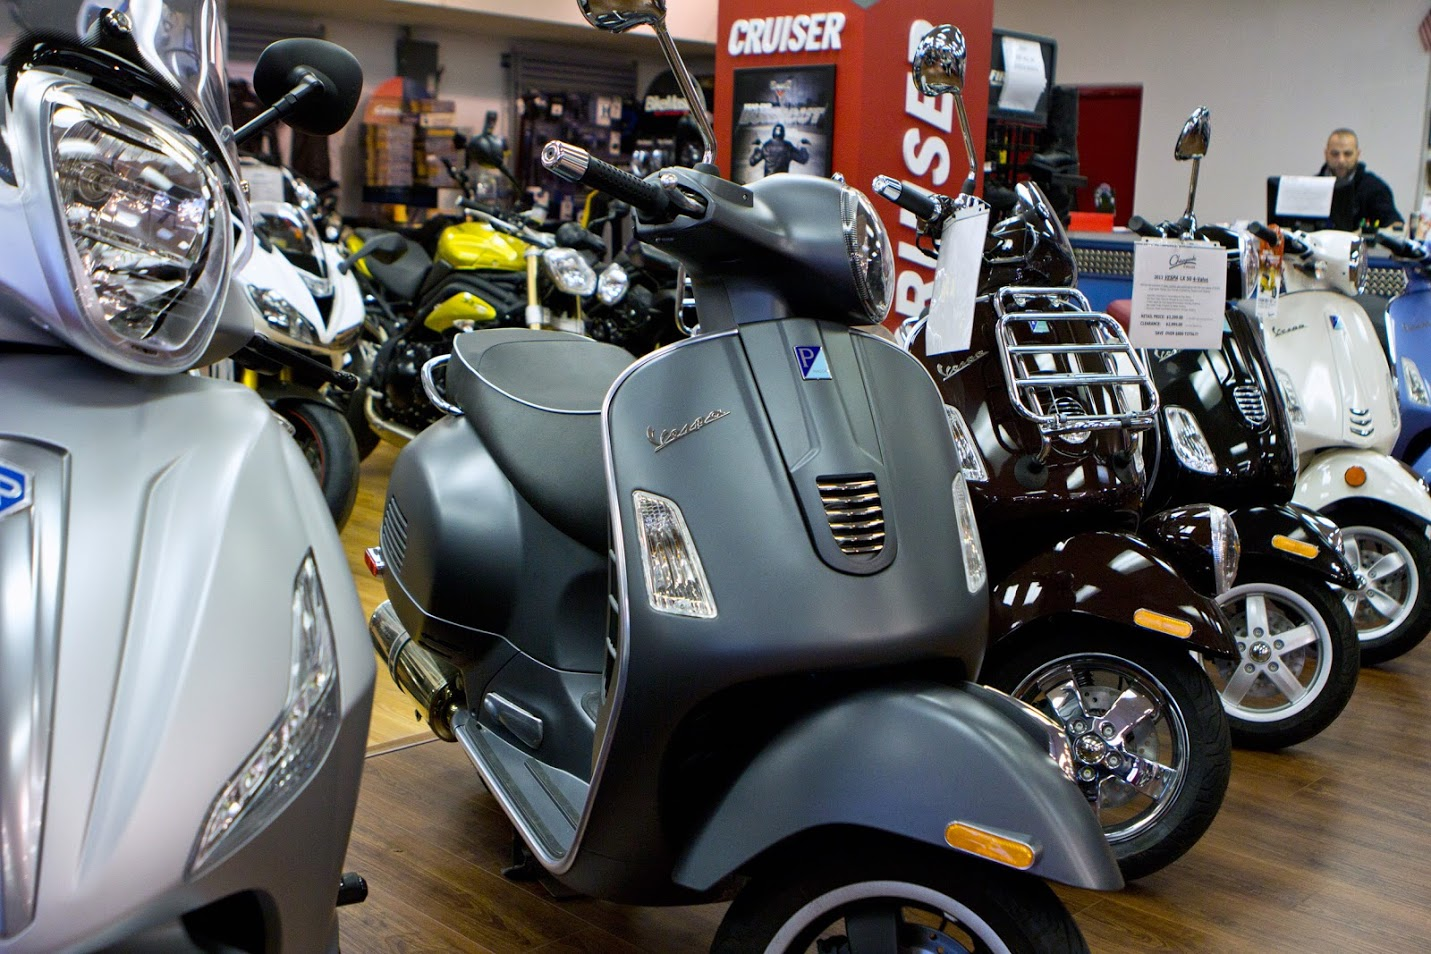 vespa scooters in shop